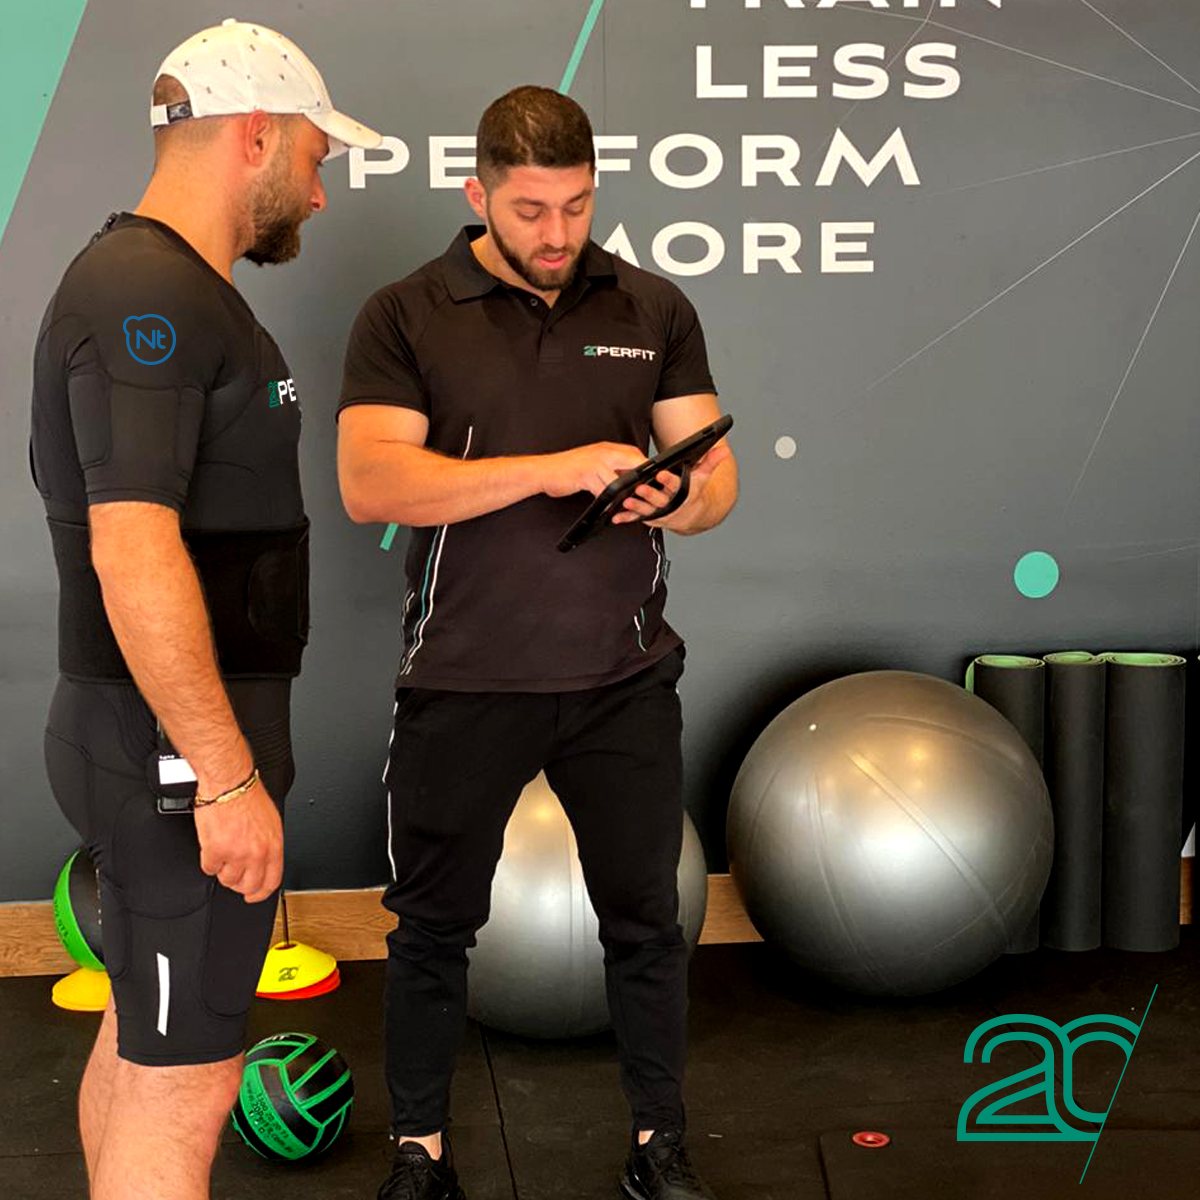 20PerFit's Personal Trainer Tutoring His Client